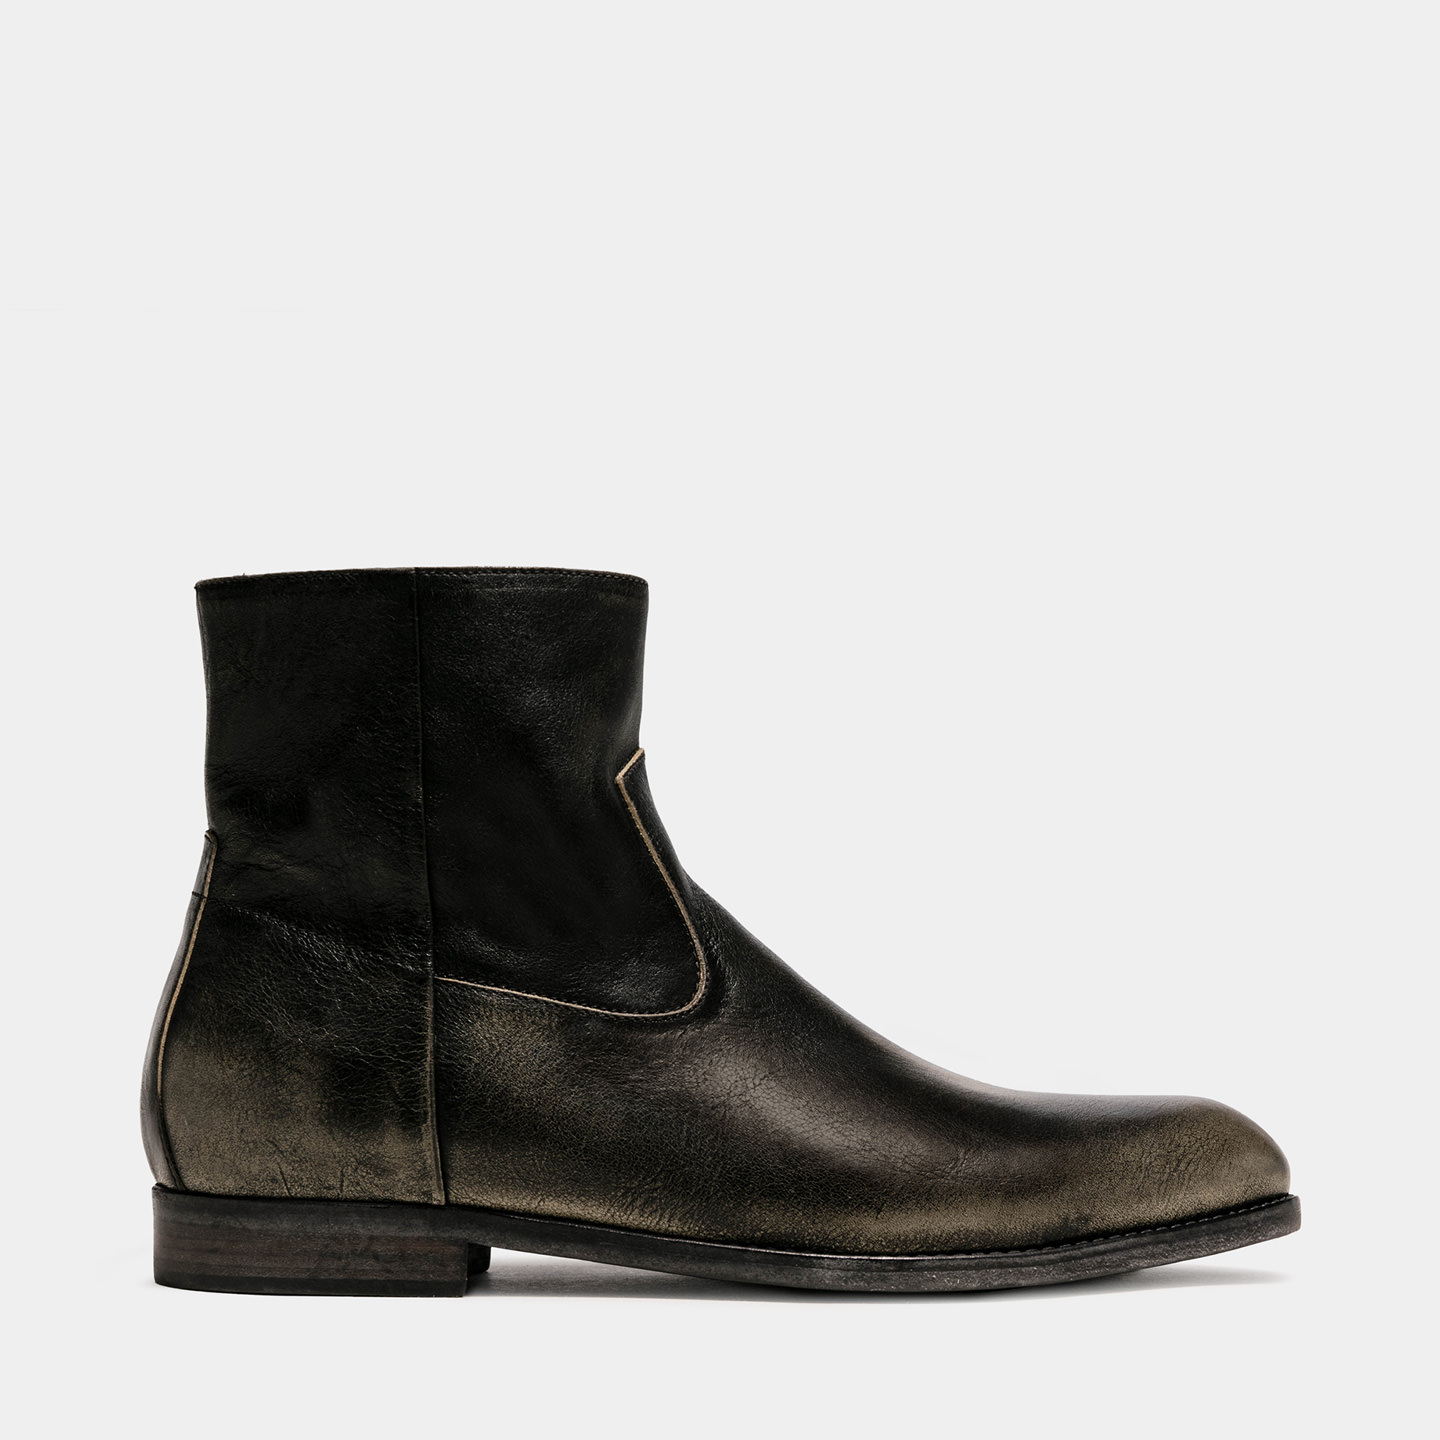 BUTTERO: FLOYD BOOTS IN BLACK LEATHER